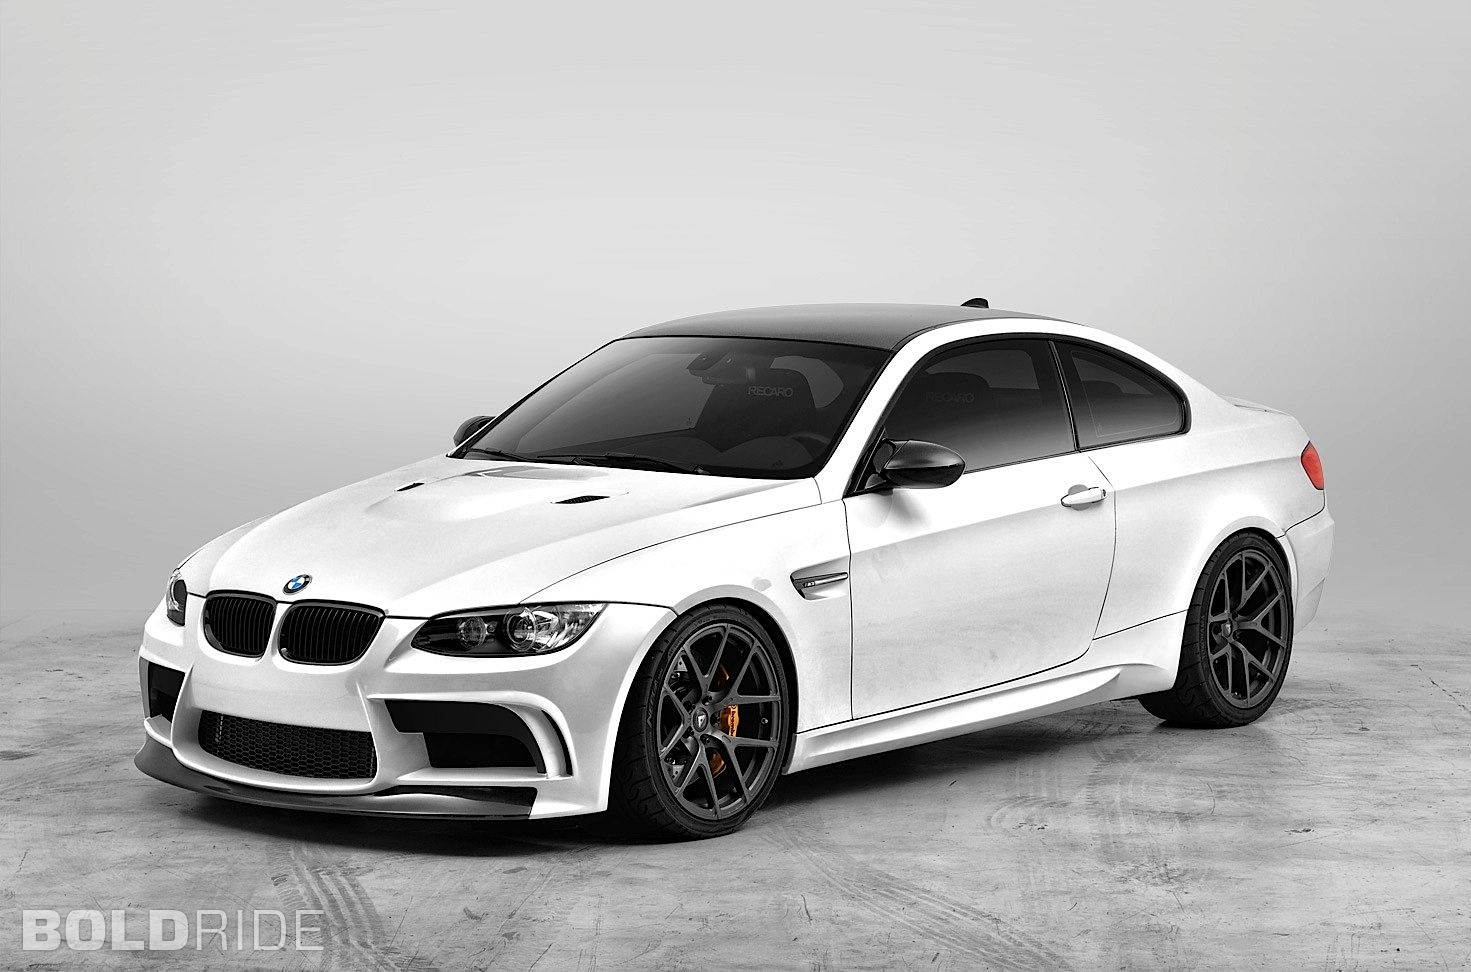 BMW M White Hottest BMWstories out there Share yours